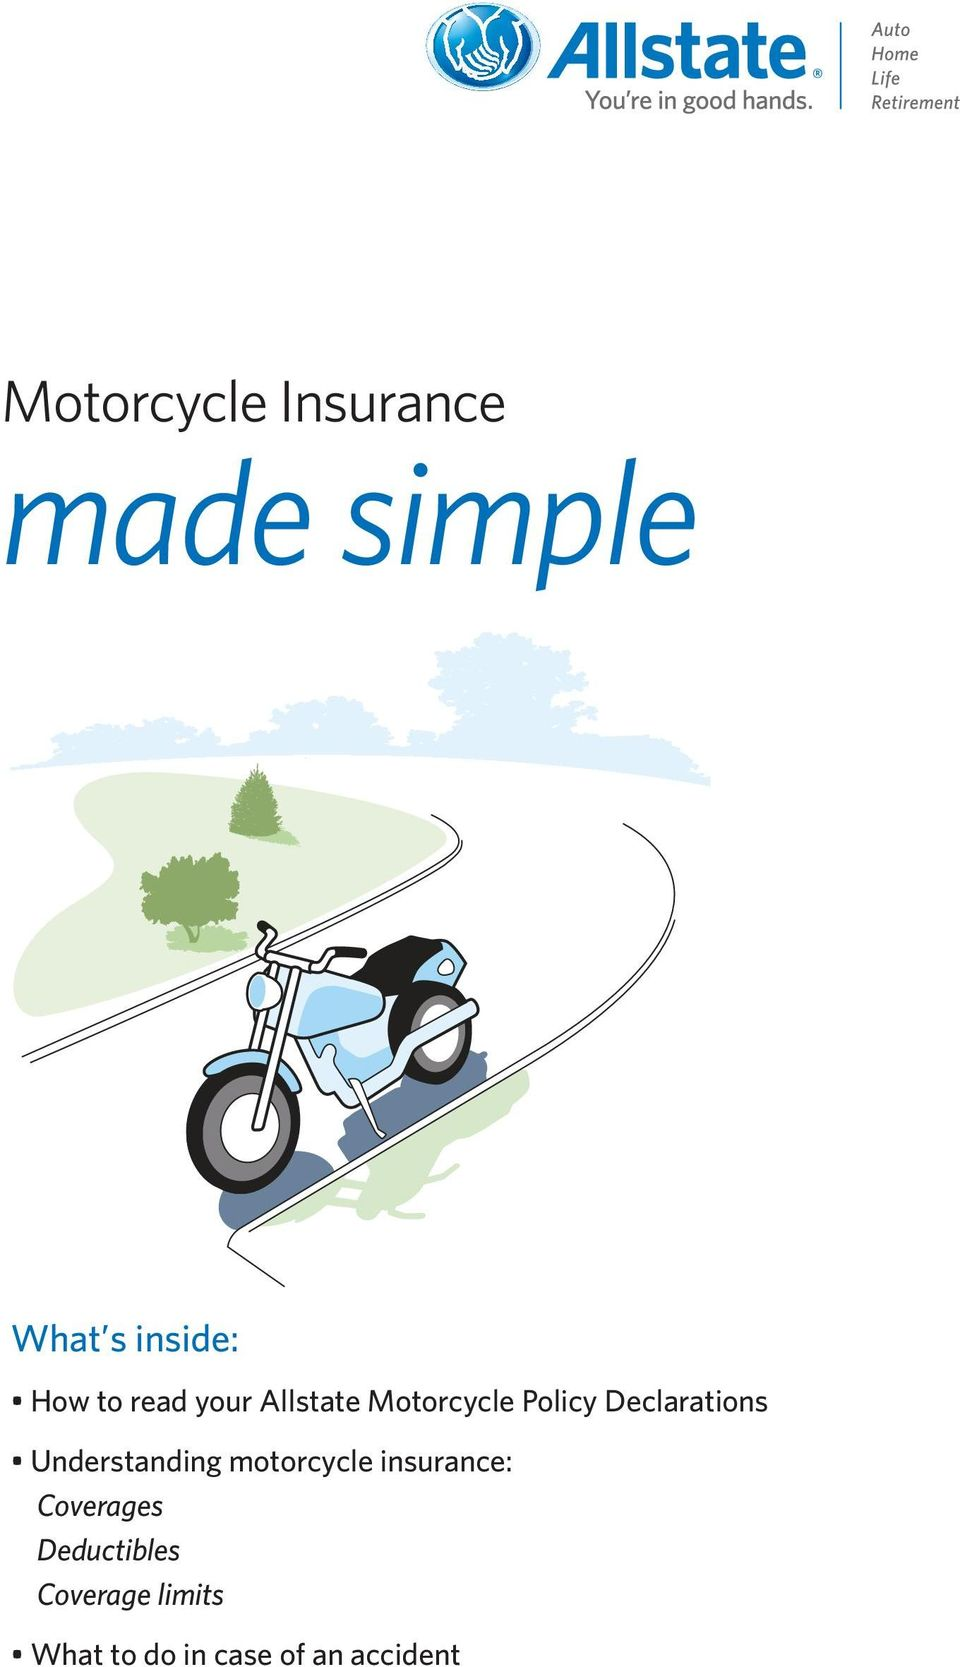 Understanding motorcycle insurance: Coverages